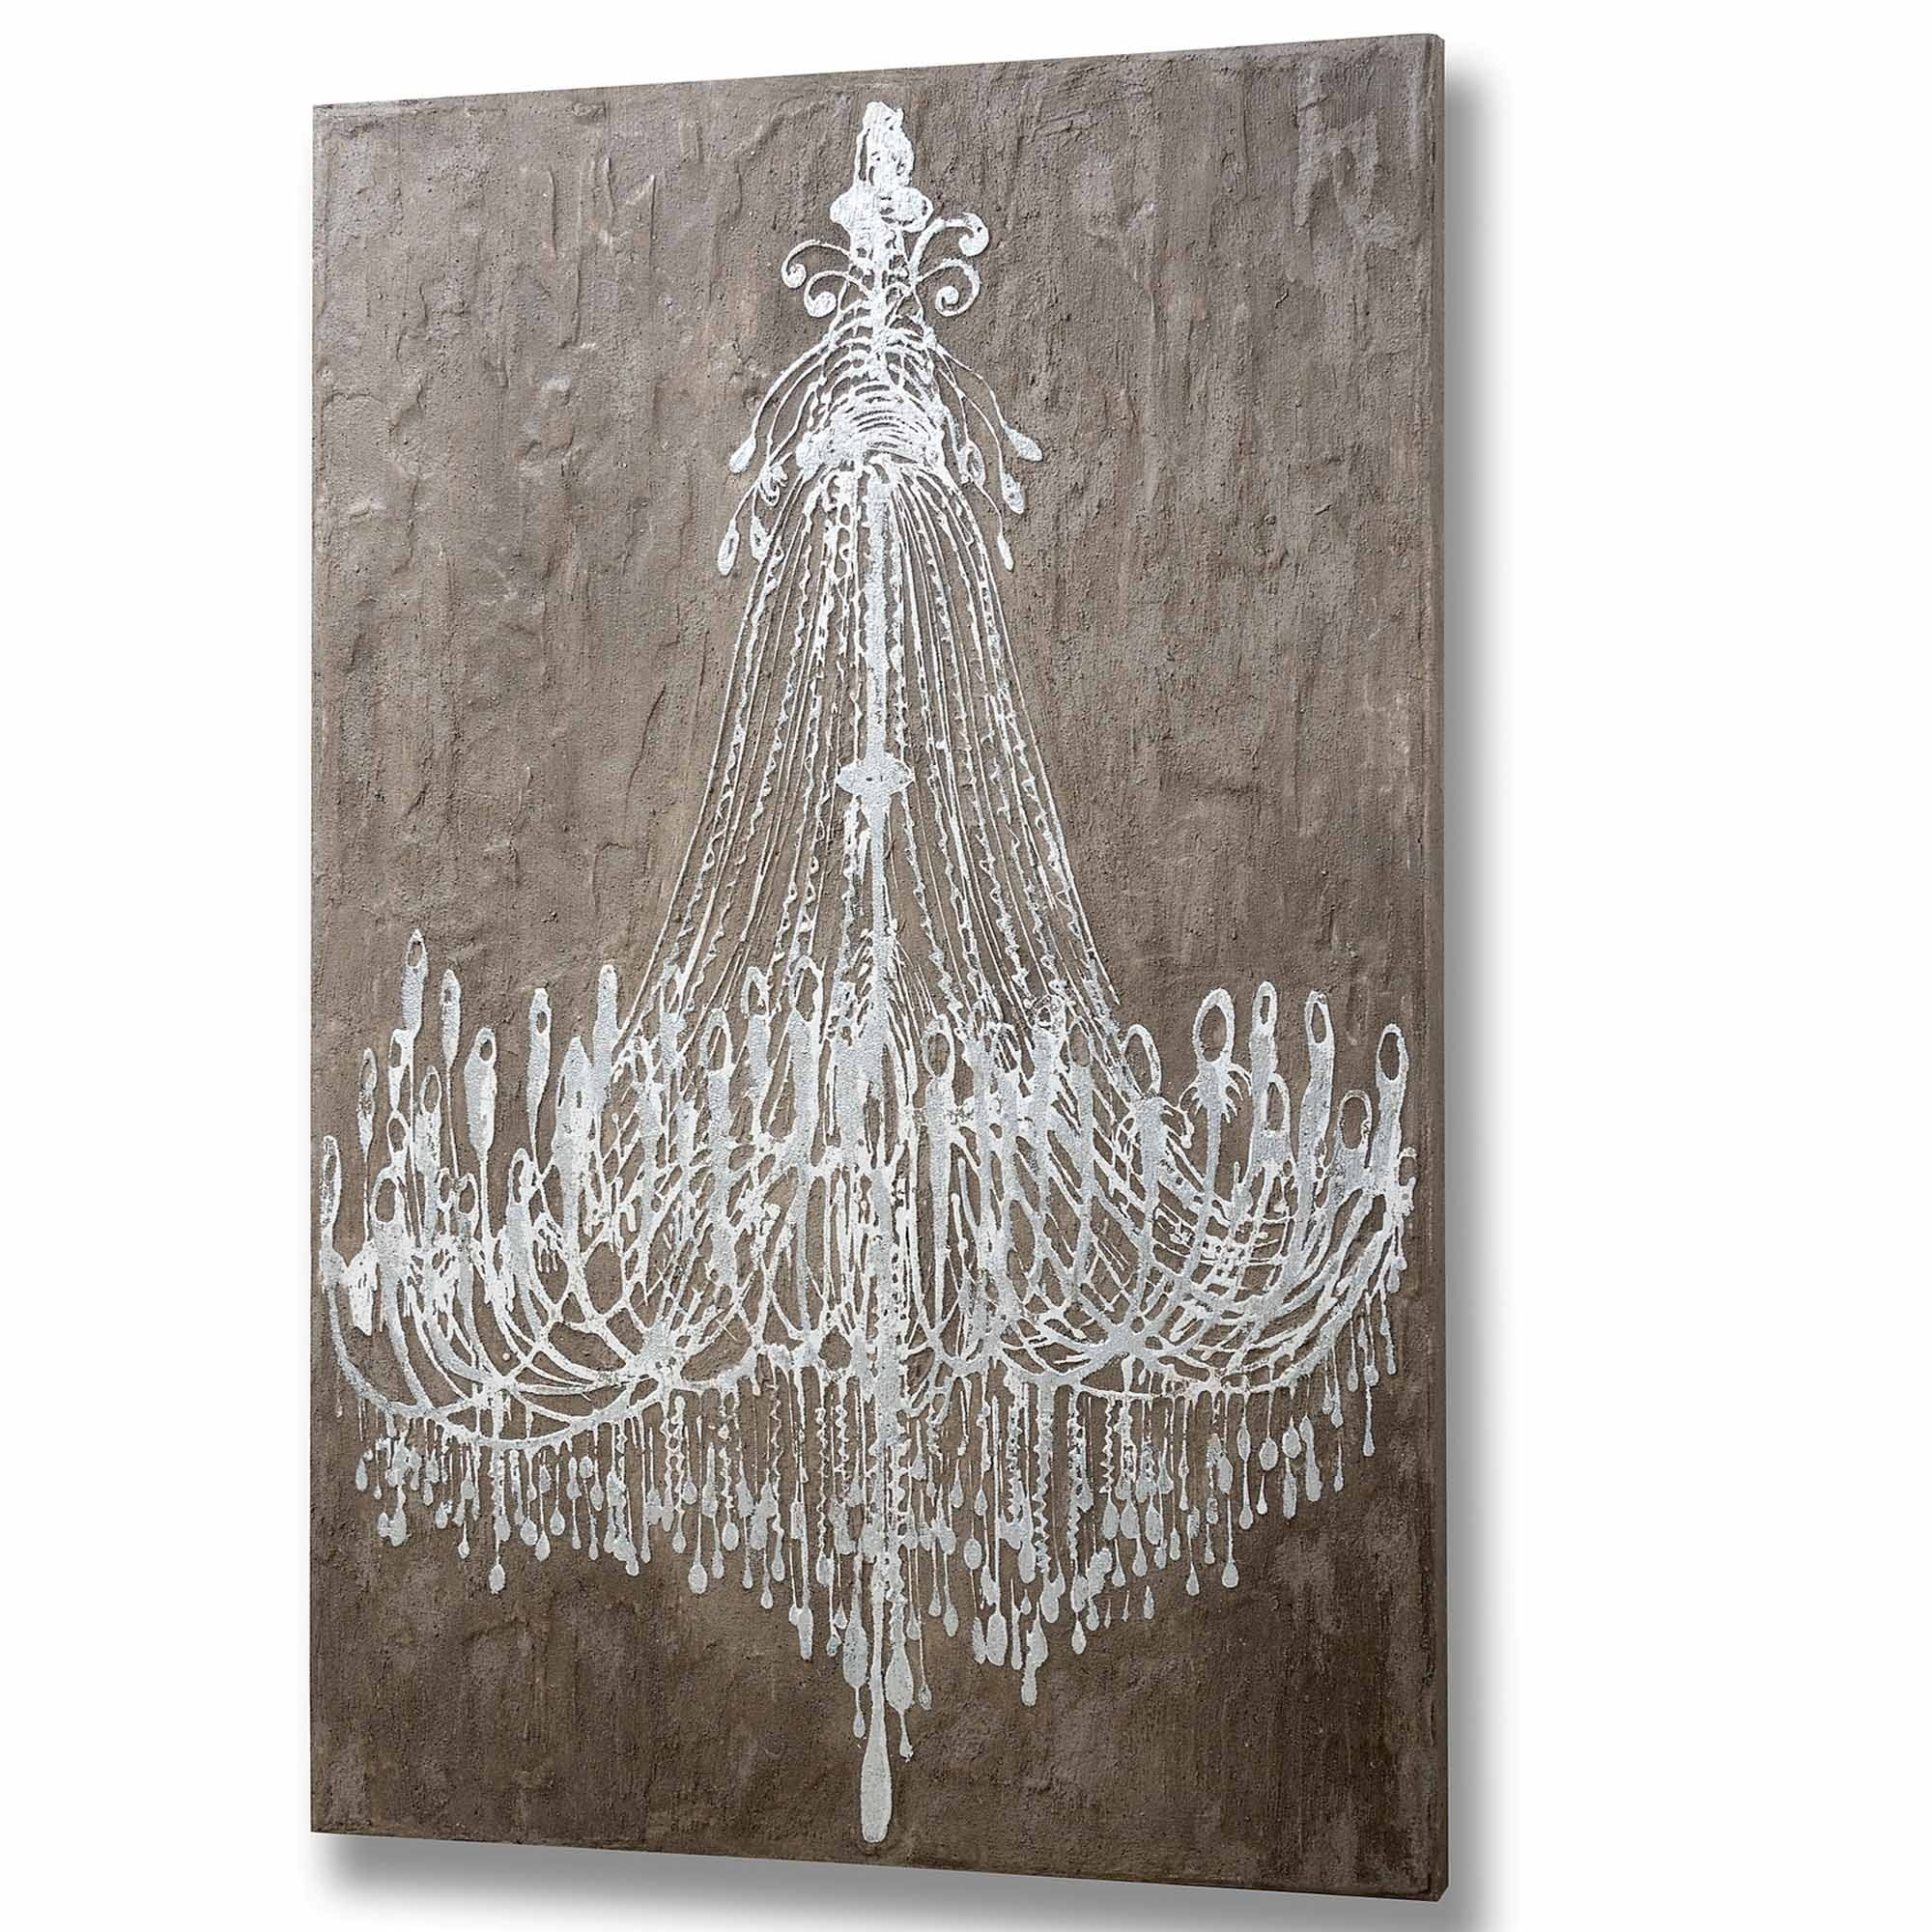 Chandelier Wall Art | Painting Art | Homesdirect365 Intended For Chandelier Wall Art (View 8 of 20)